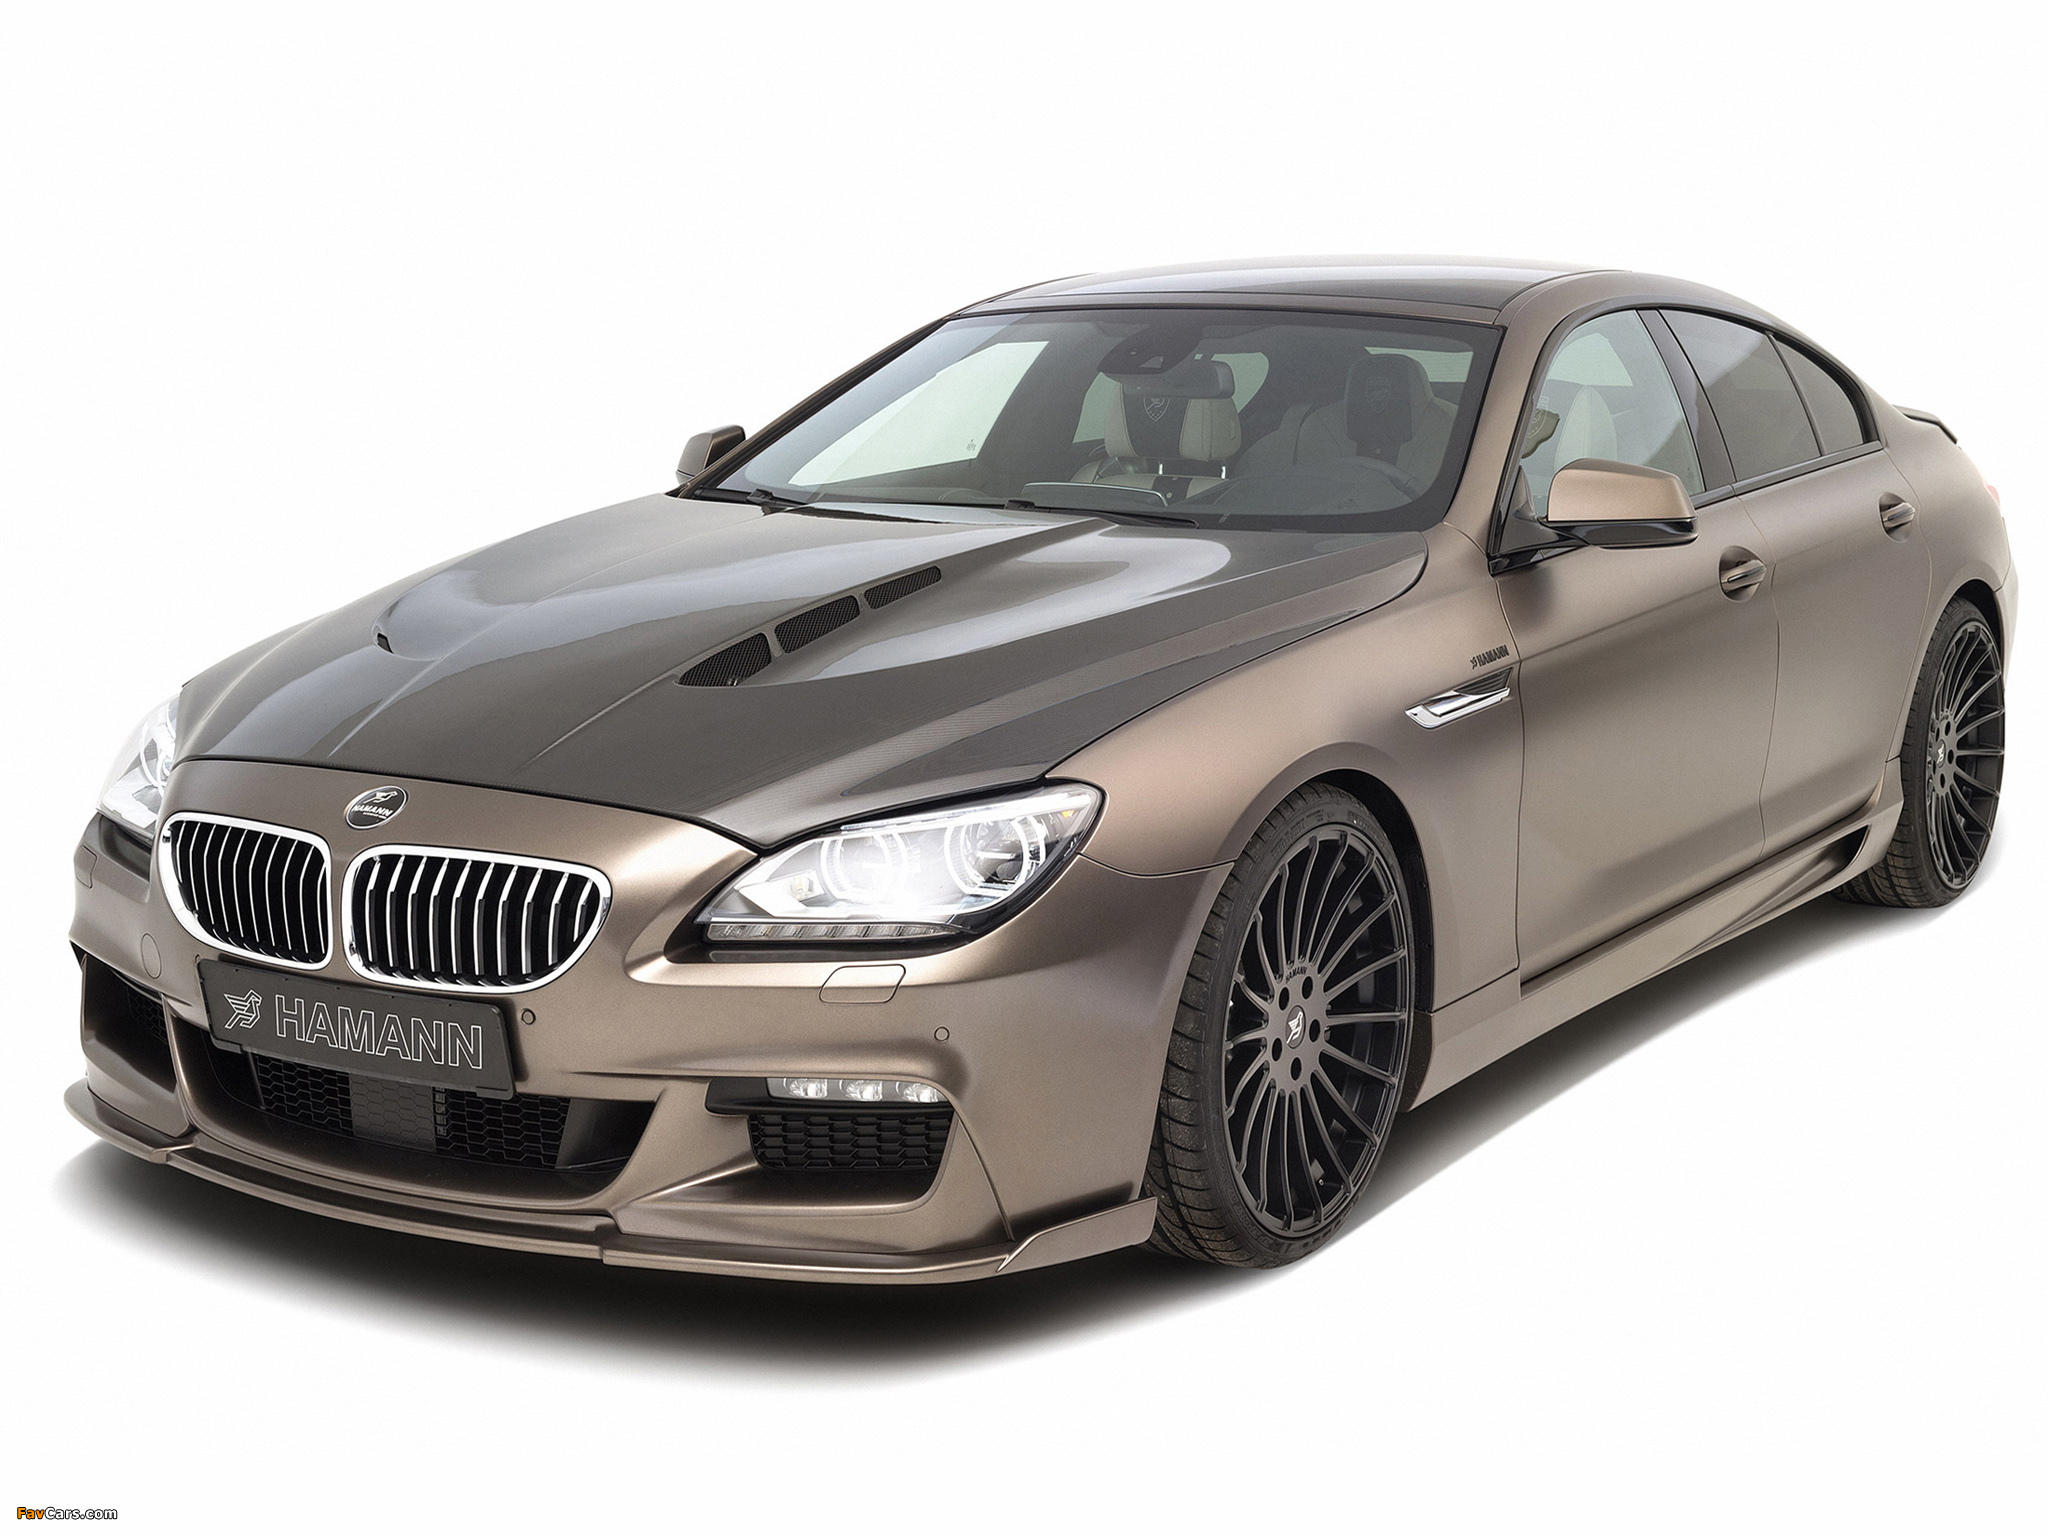 hamann bmw 6 series gran coupe m sport package f06 2013 wallpapers 2048x1536. Black Bedroom Furniture Sets. Home Design Ideas